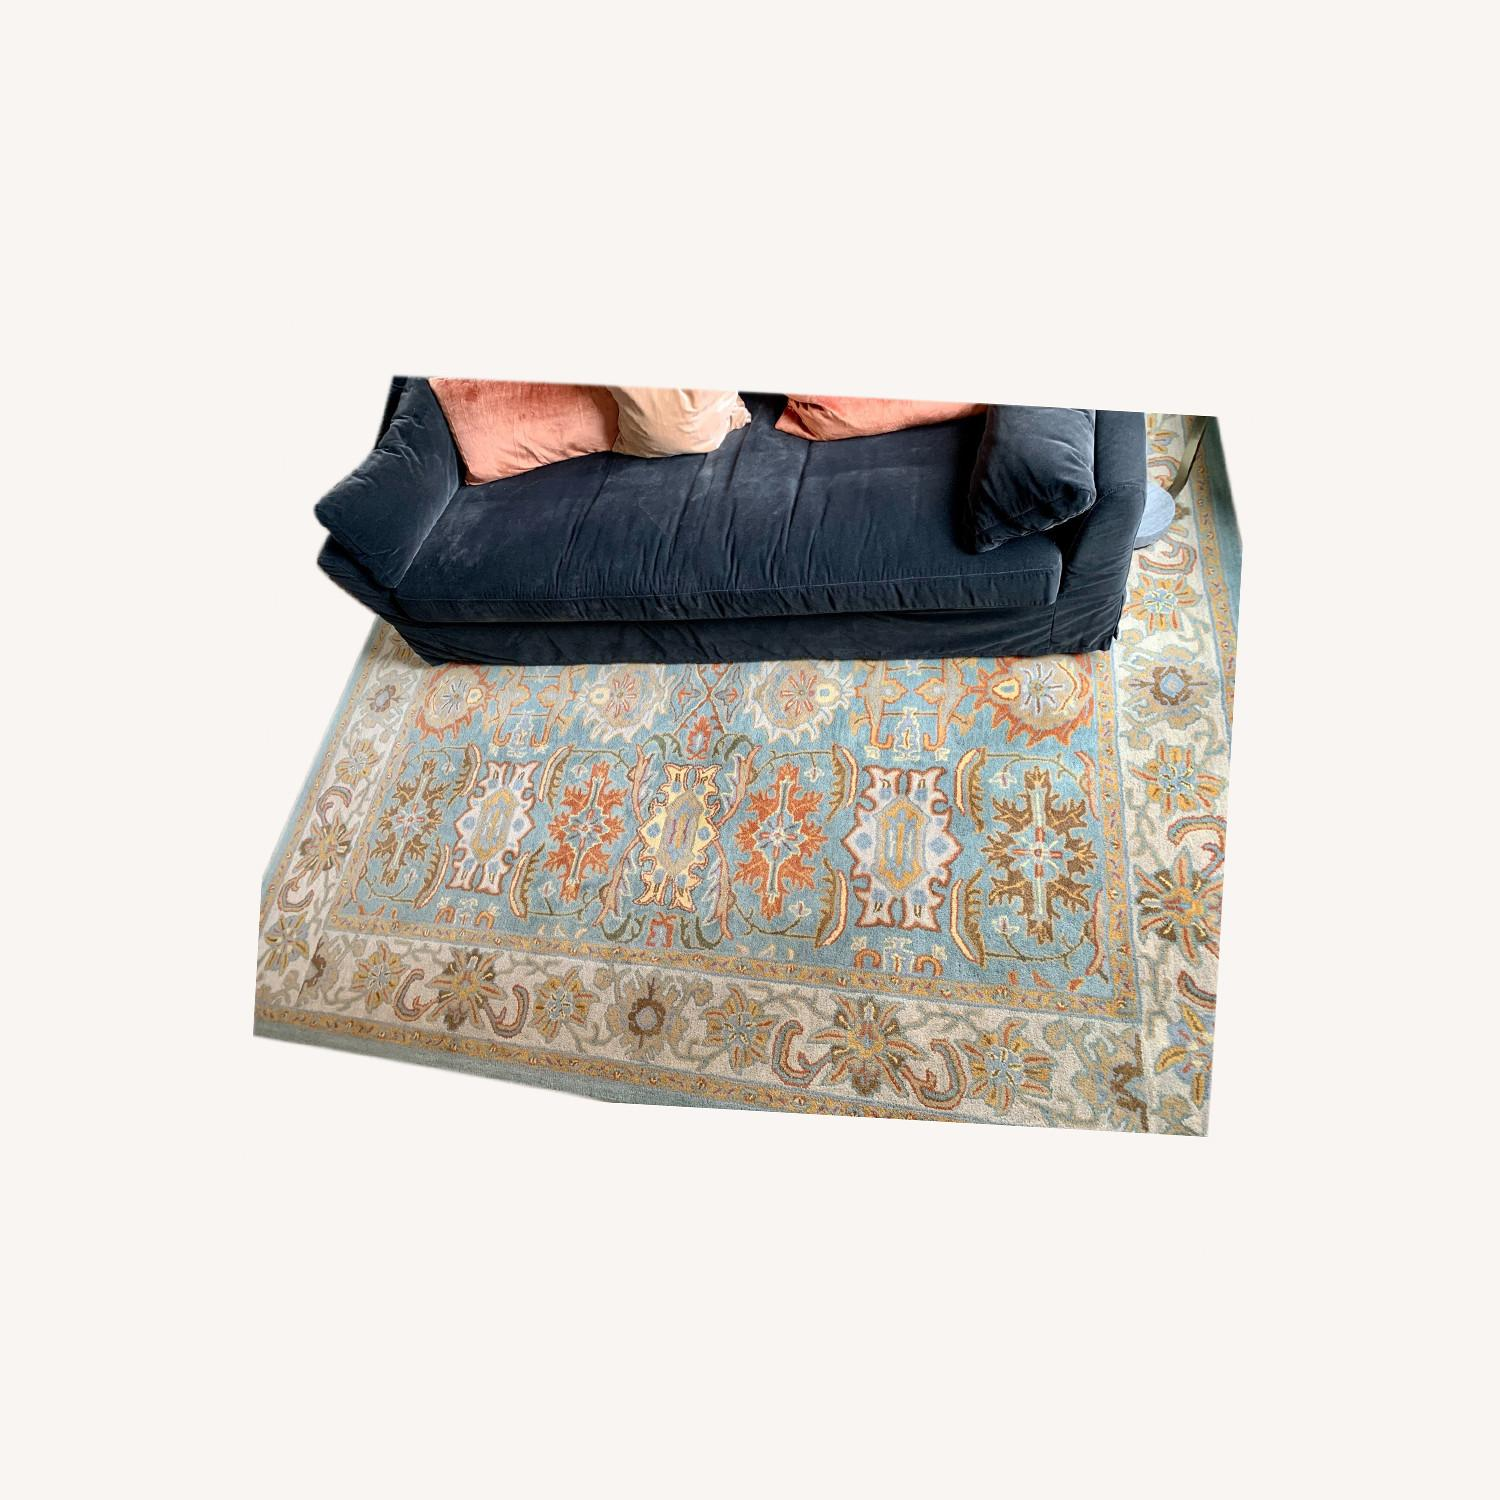 Safavieh Heritage Collection Blue Rug - image-0